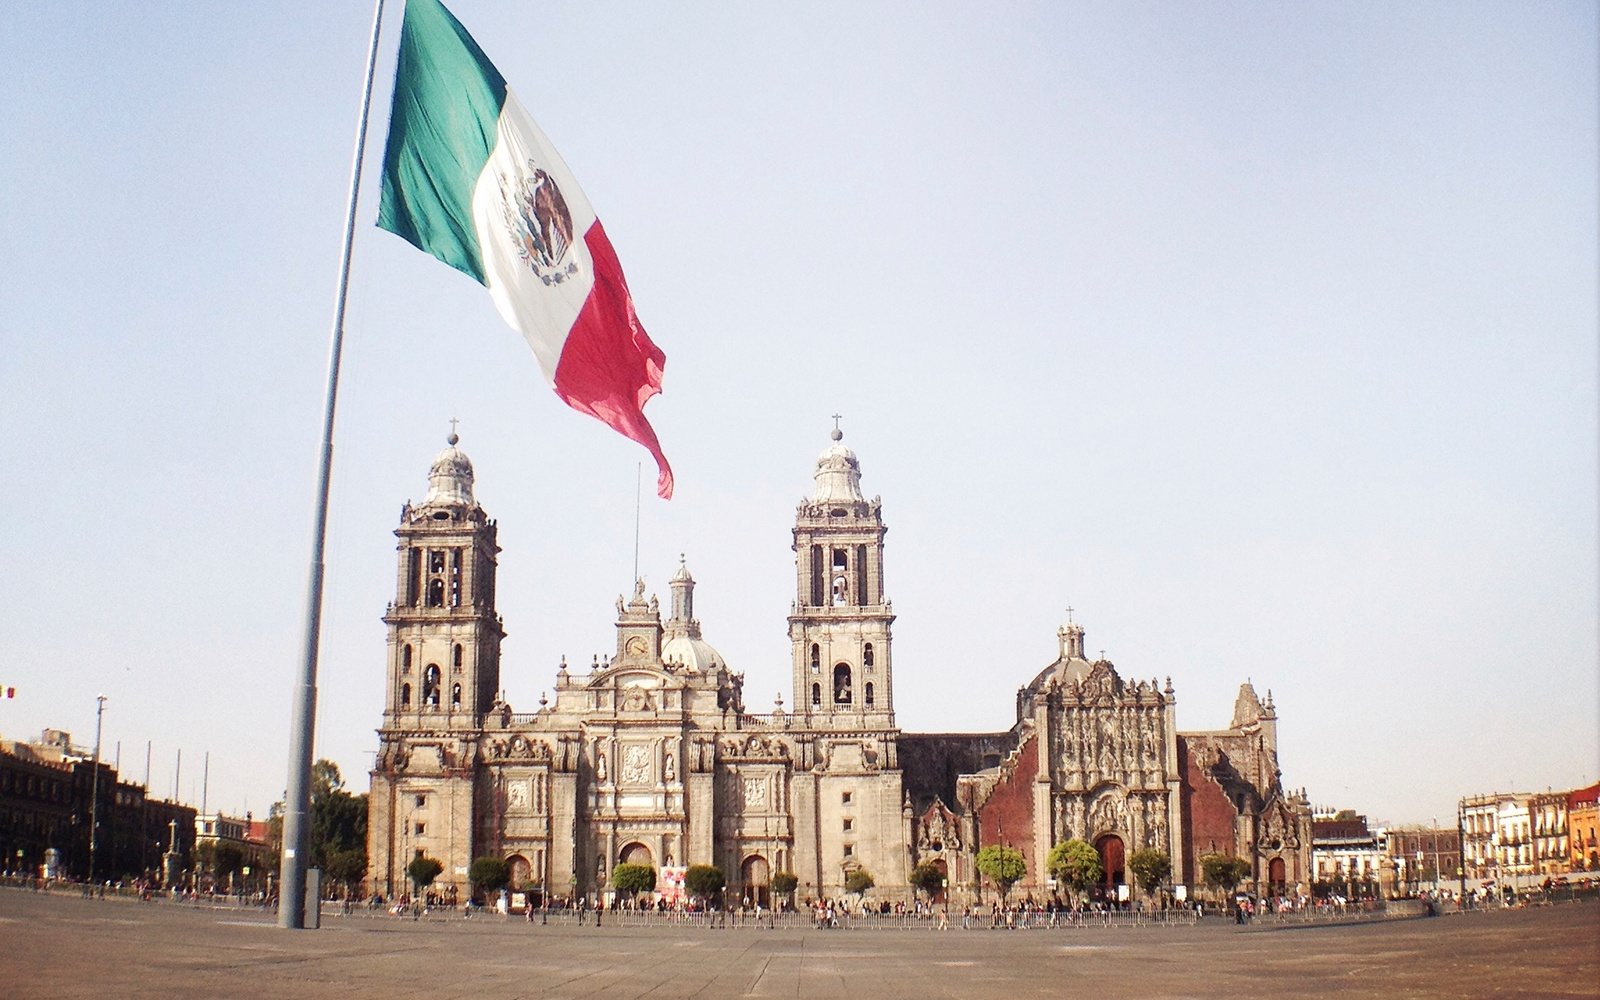 Background information on mexico - 201507 Mexico City Jpg